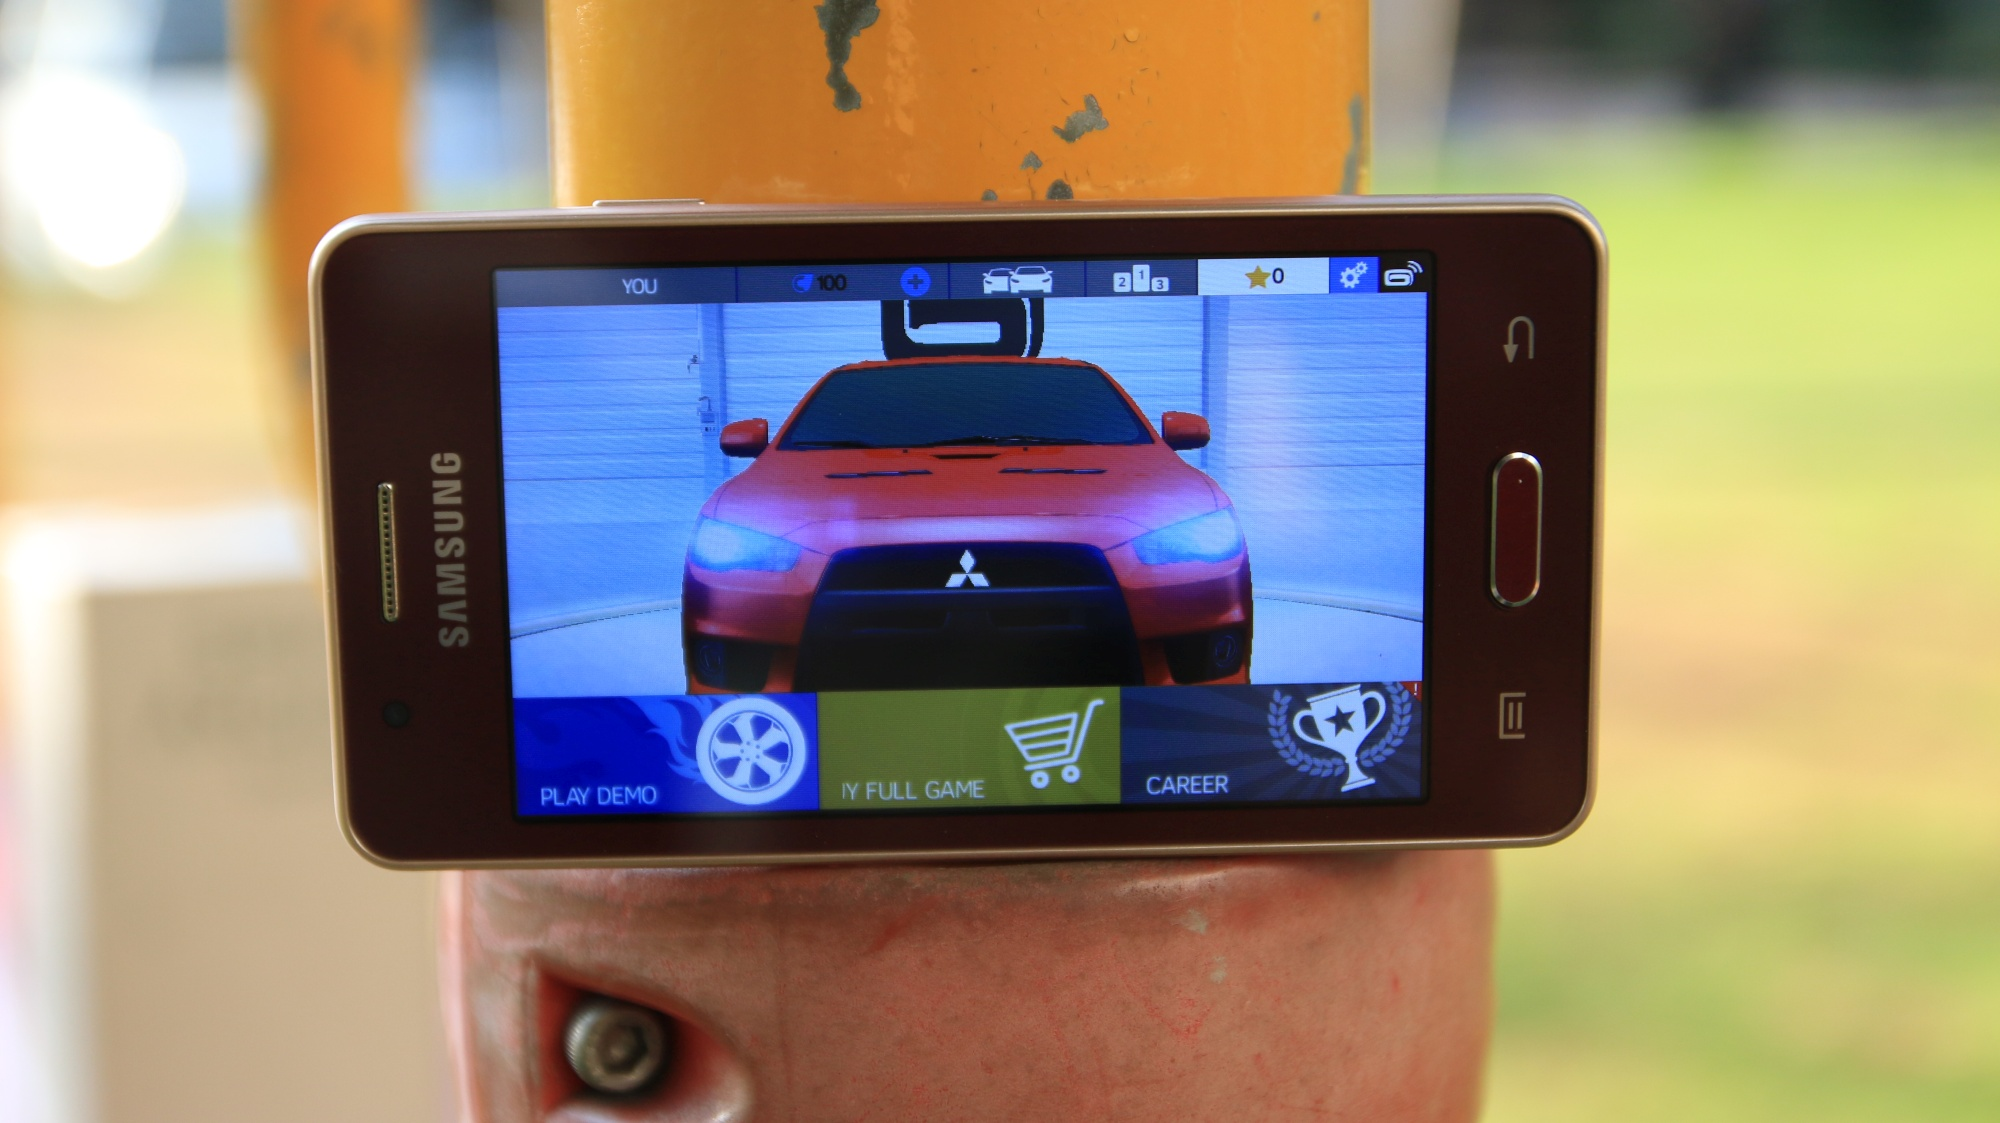 Samsung Z2 review: Strictly for first-time smartphone